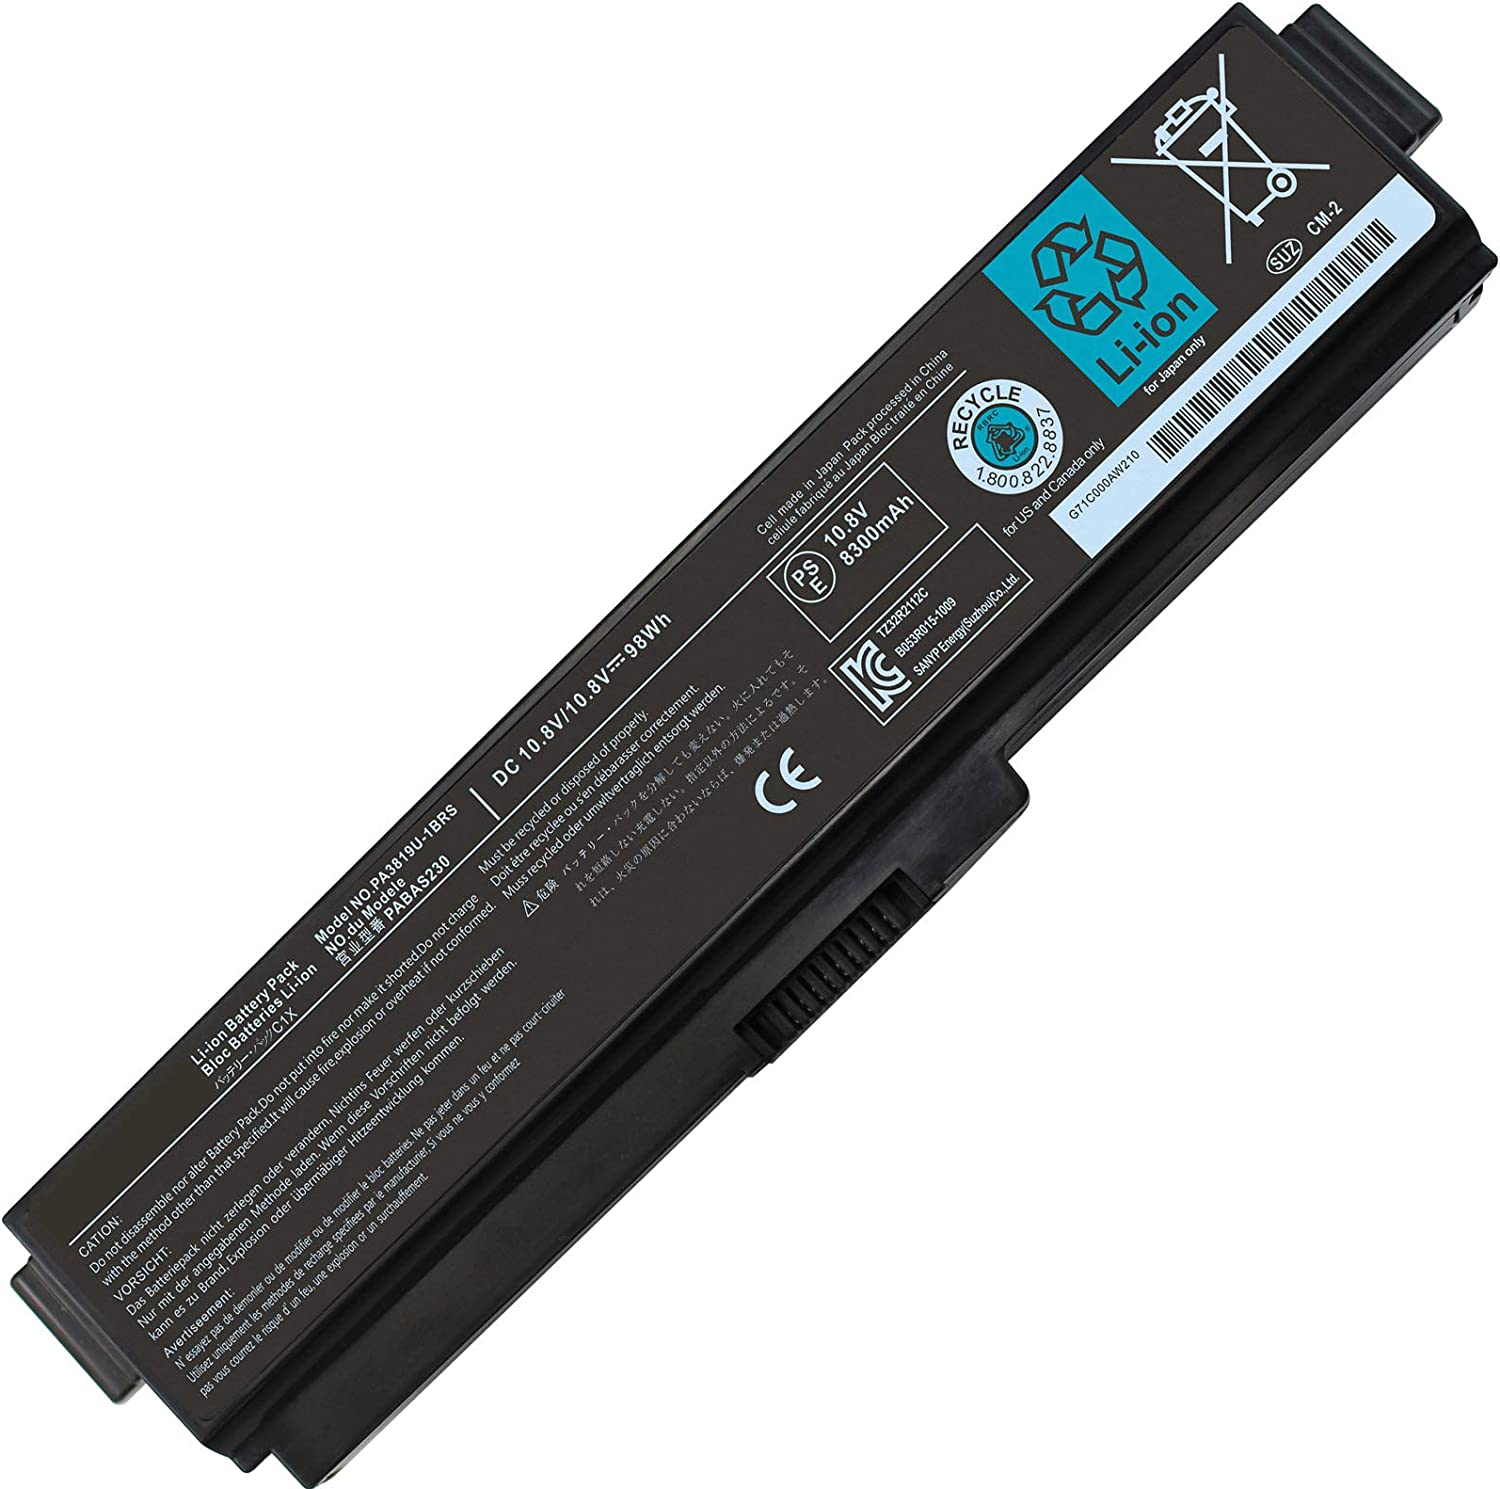 98WH PA3817U-1BRS PA3819U Battery Compatible with Toshiba Satellite A665 A665D C655 L635 C675 C675D L645 L655 L655D L675 L745 L755 L775D P745 P755 P775 M645 A660 S6086 S6050 S4050 S4070 S5170 S5167